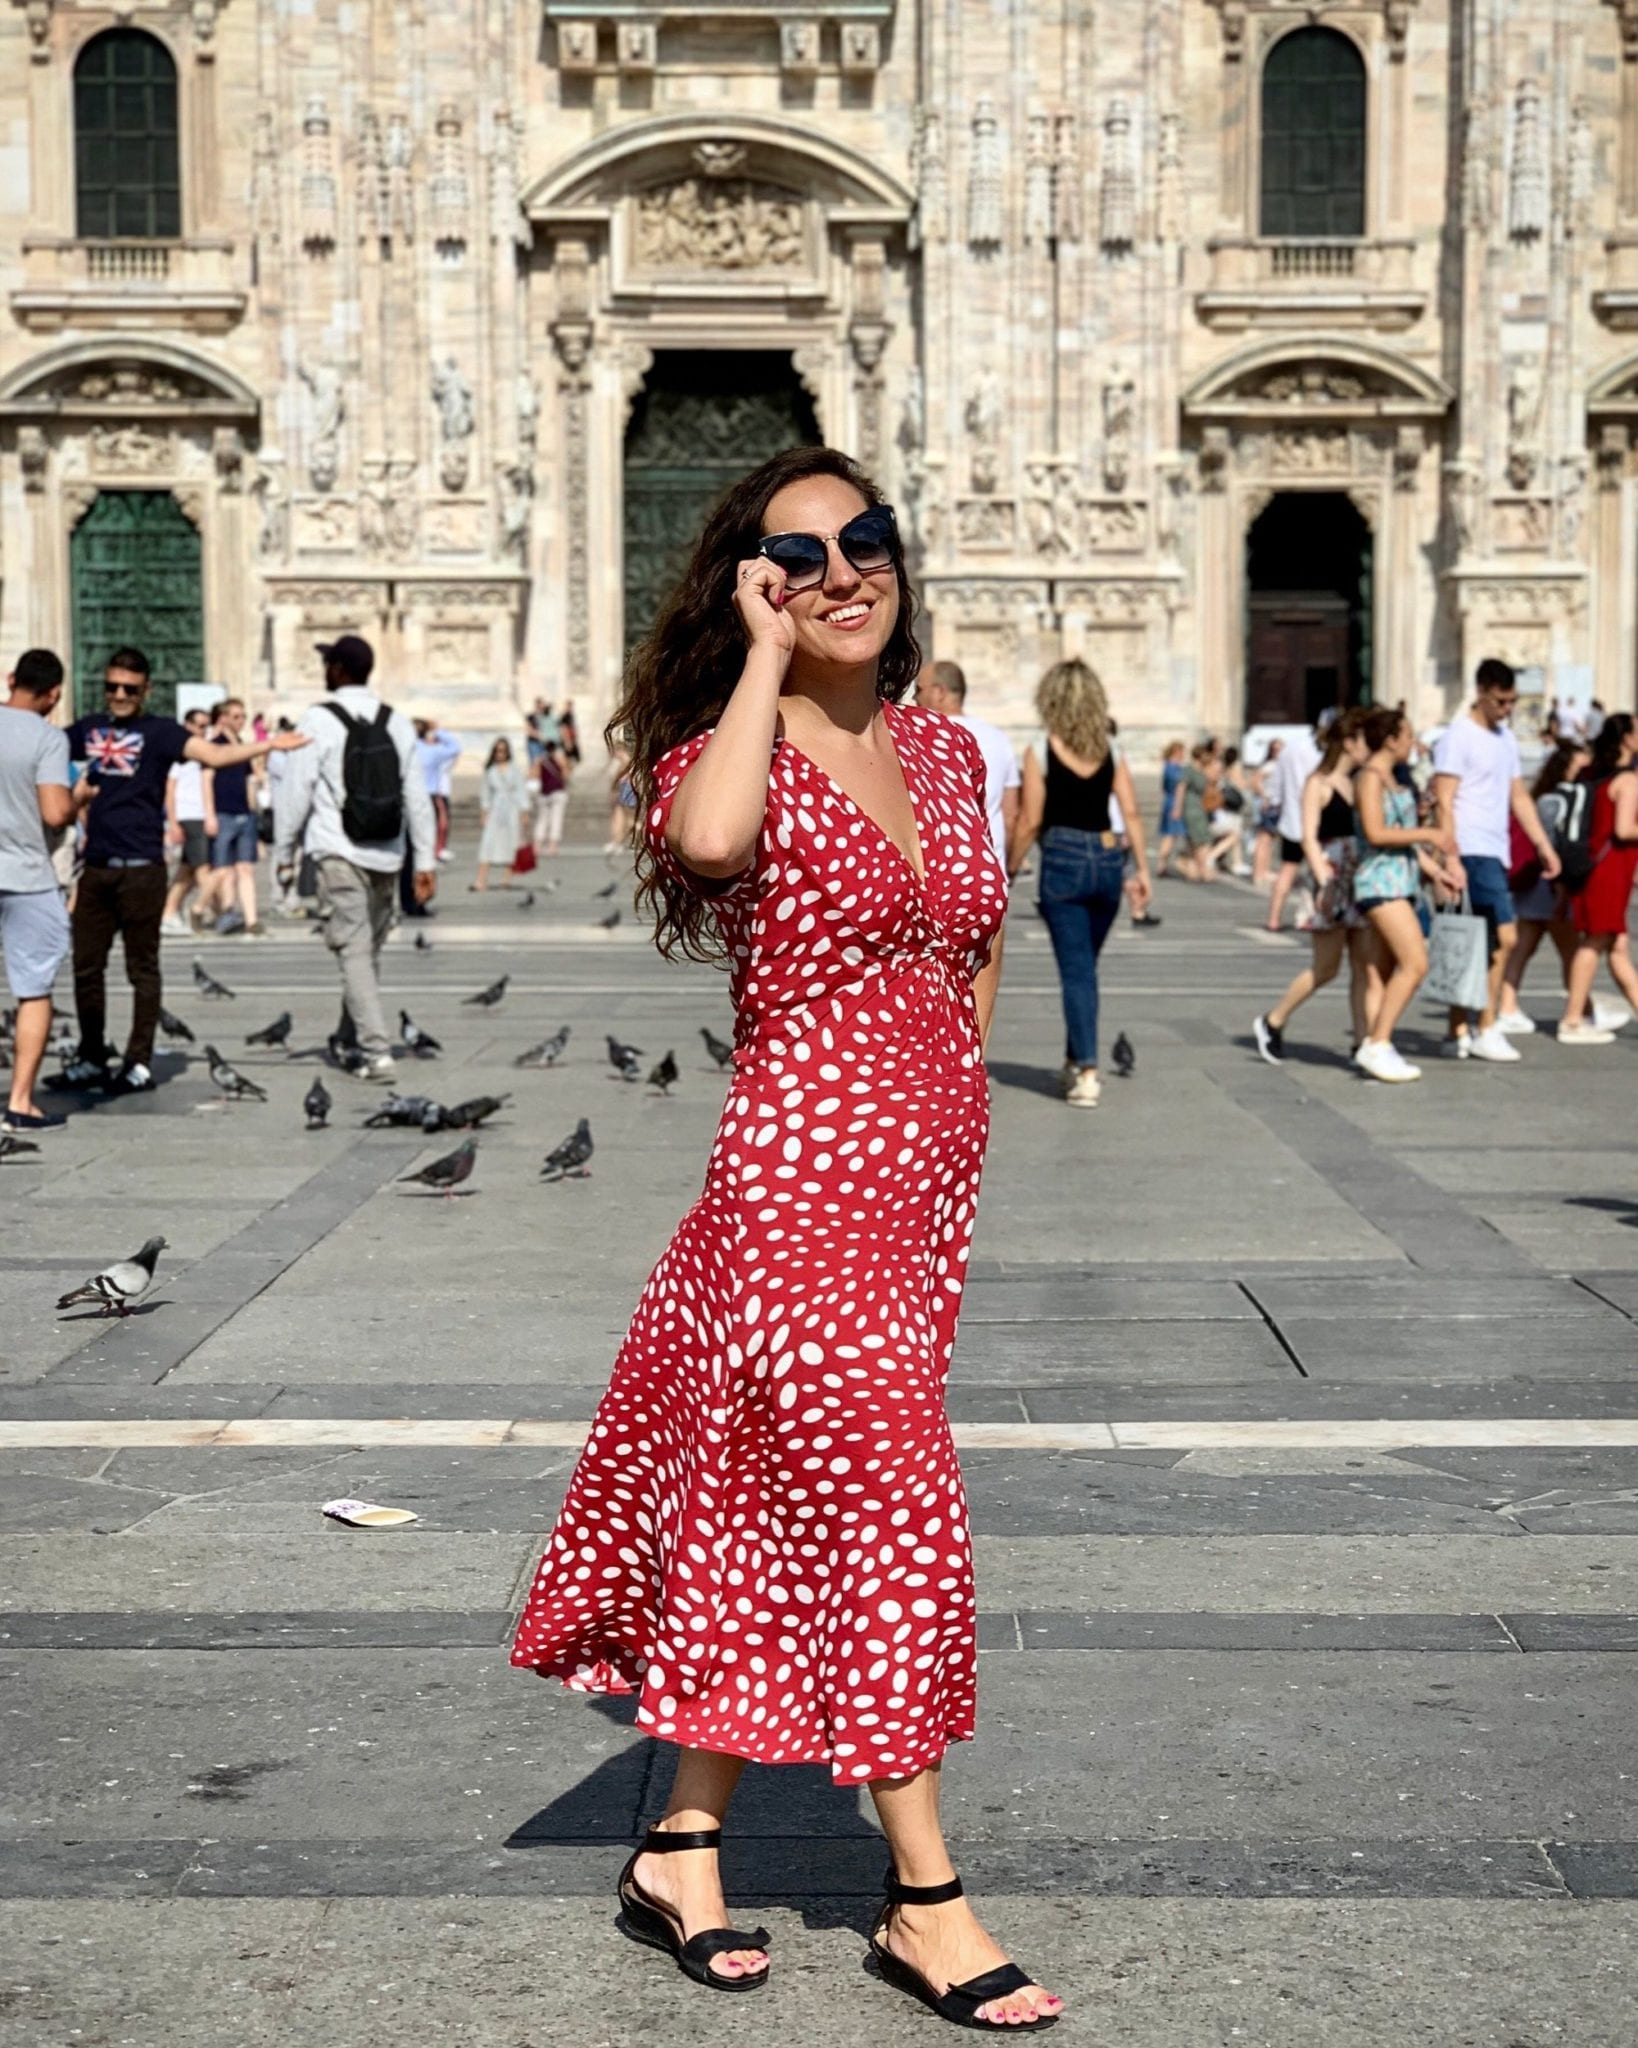 Kate wears a long red short-sleeved dress covered with white polka dots of various sizes and black sandals. She wears black sunglasses and poses as if about to take them off with one hand. She is standing in front of Milan's Duomo and in the background you can see pigeons and people taking pictures in front of it.